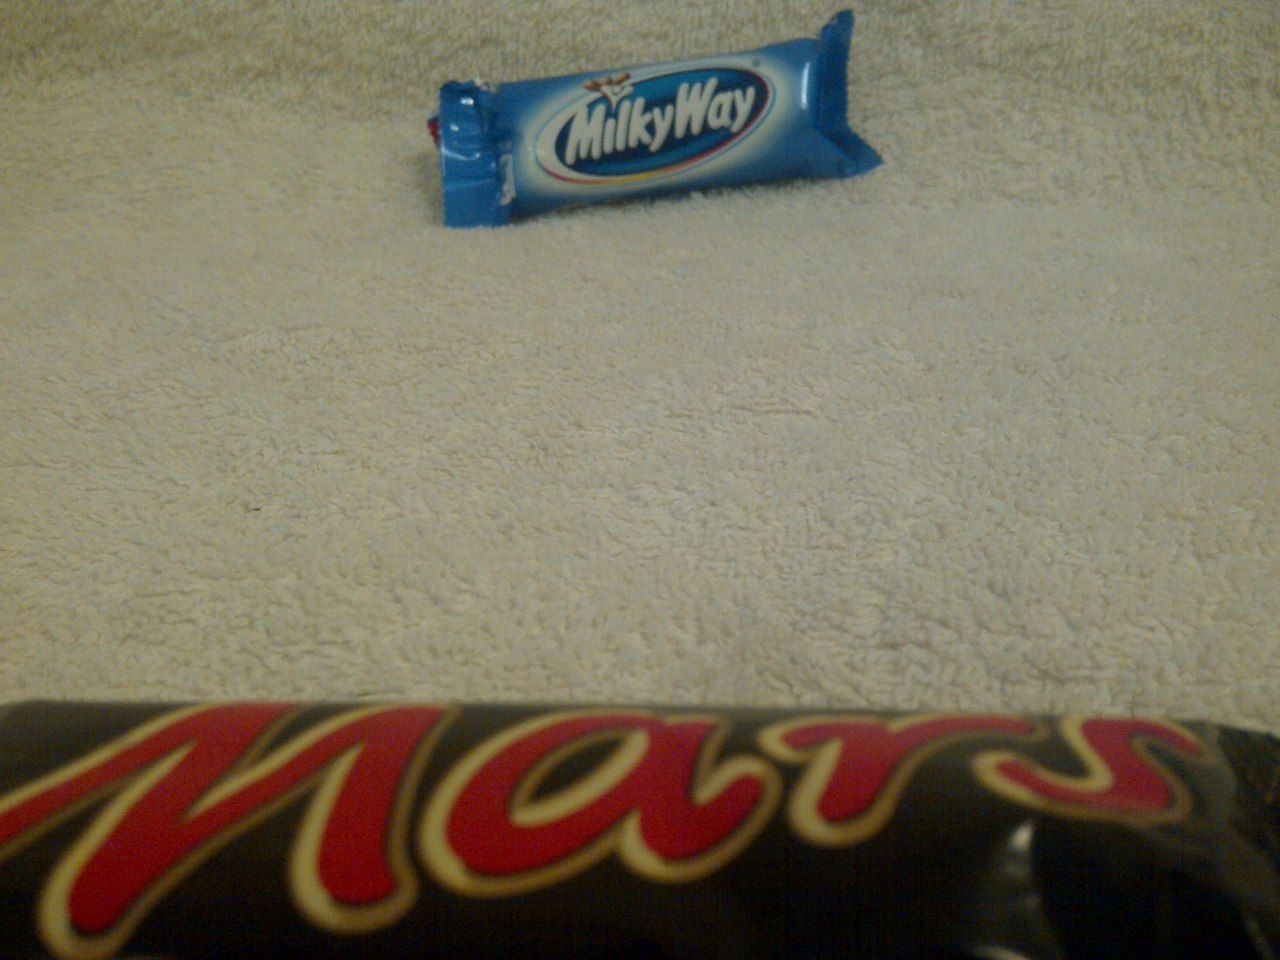 andrewkurbiko:  Breathtaking view of the Milky Way from the surface of Mars